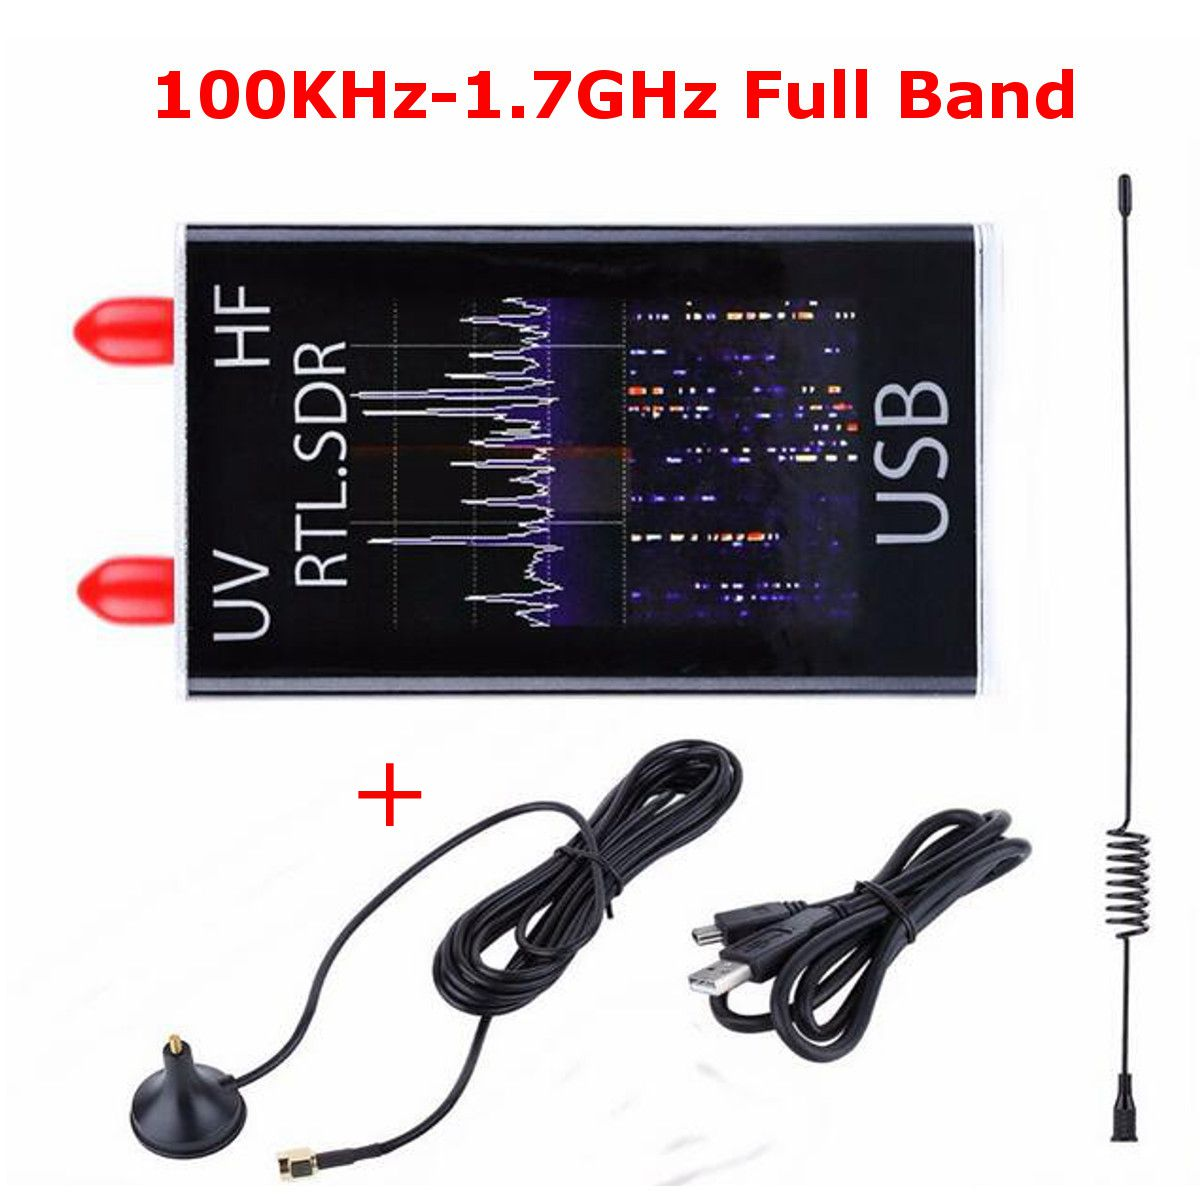 Mini Full B and UV HF RTL-SDR USB Digital Mobile TV Tuner Receiver 100KHz-1.7GHz /R820T+8232 Ham Radio with Antenna for Phone PC цены